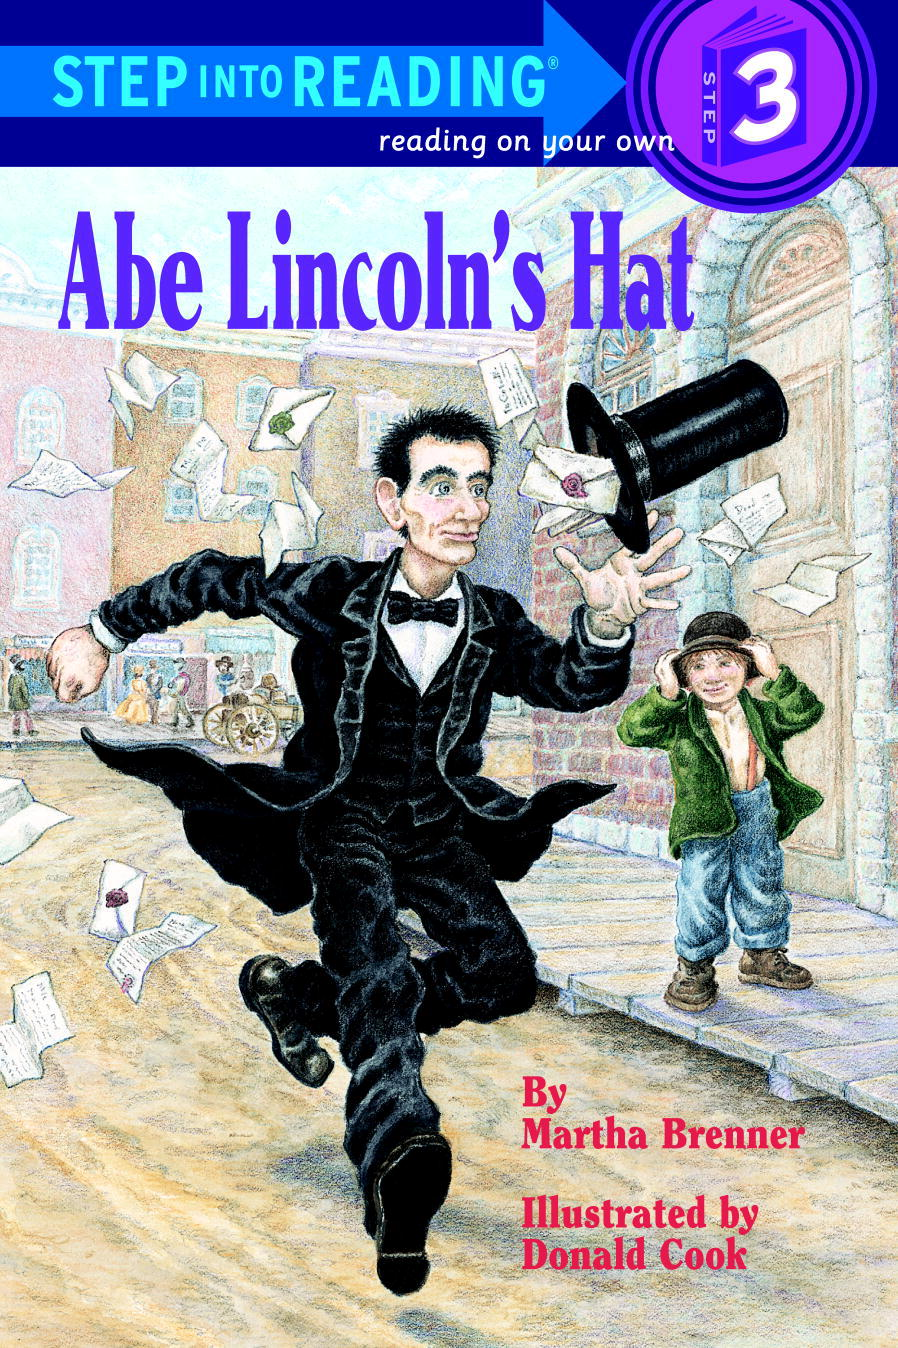 Abe Lincoln's Hat By: Martha Brenner,Donald Cook